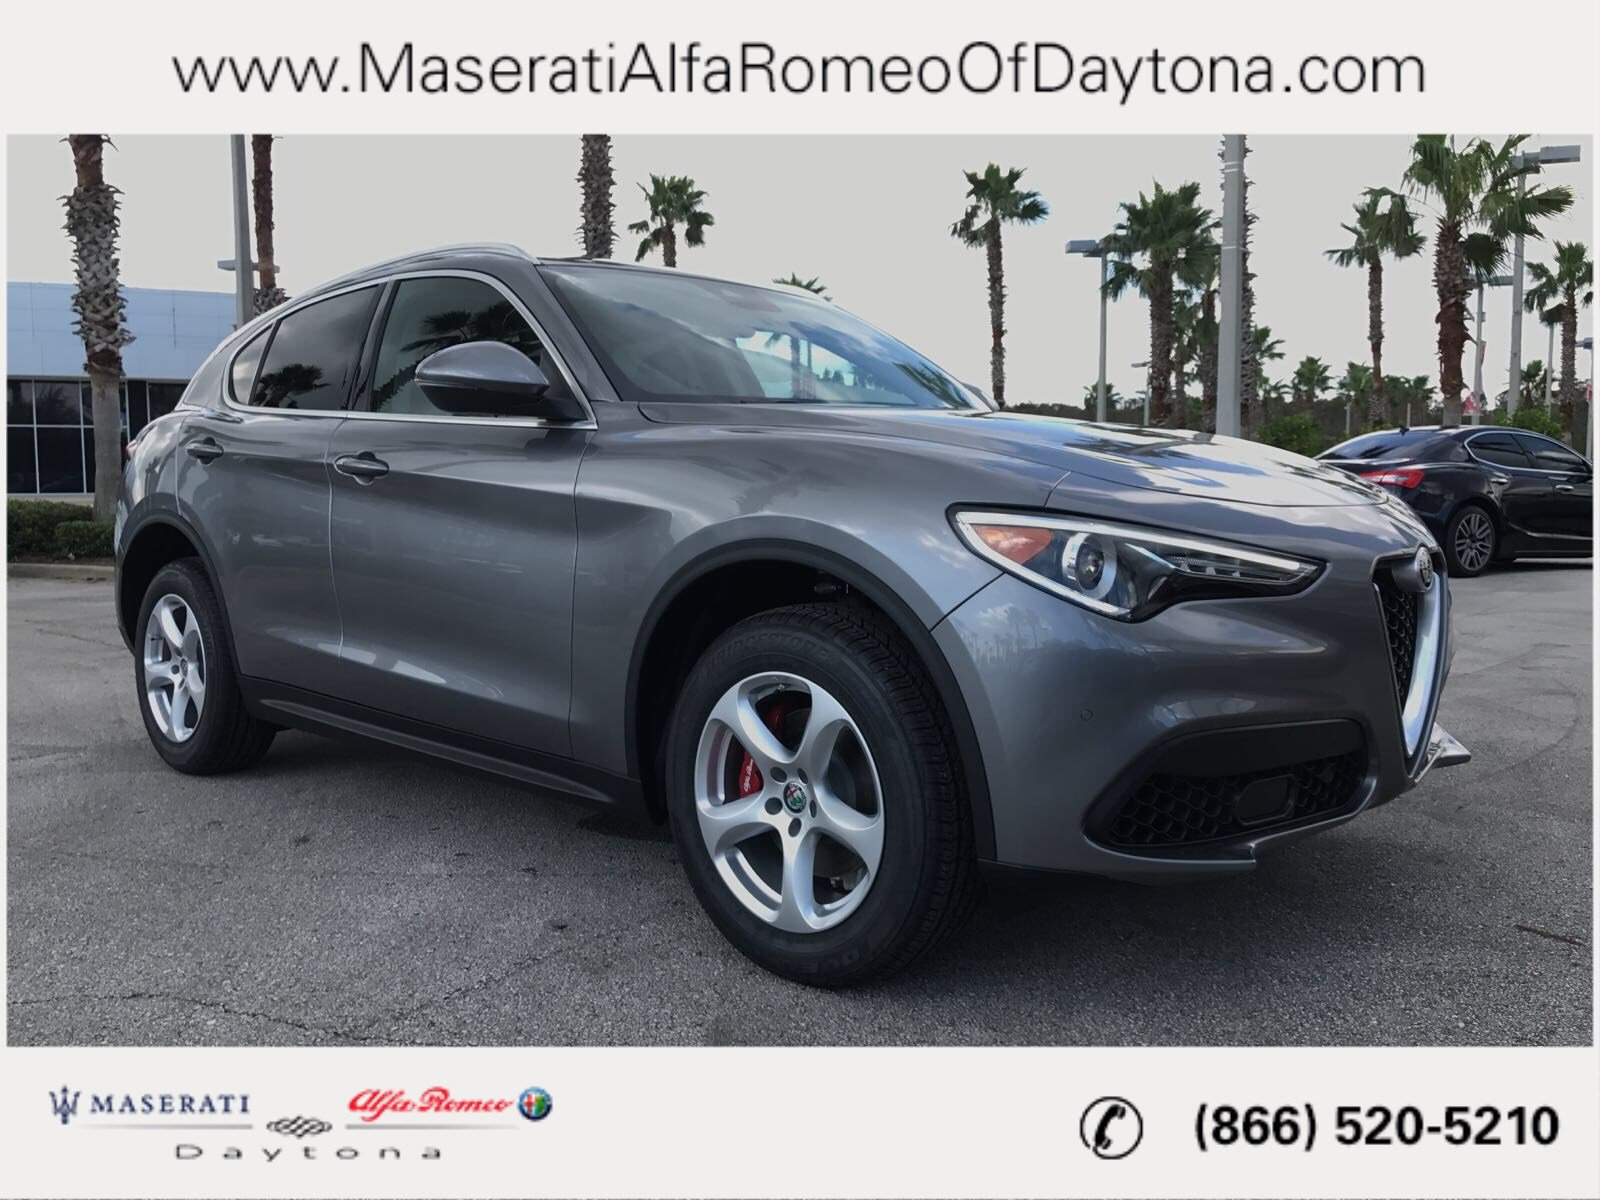 New 2018 Alfa Romeo Stelvio SUV in Daytona Beach A